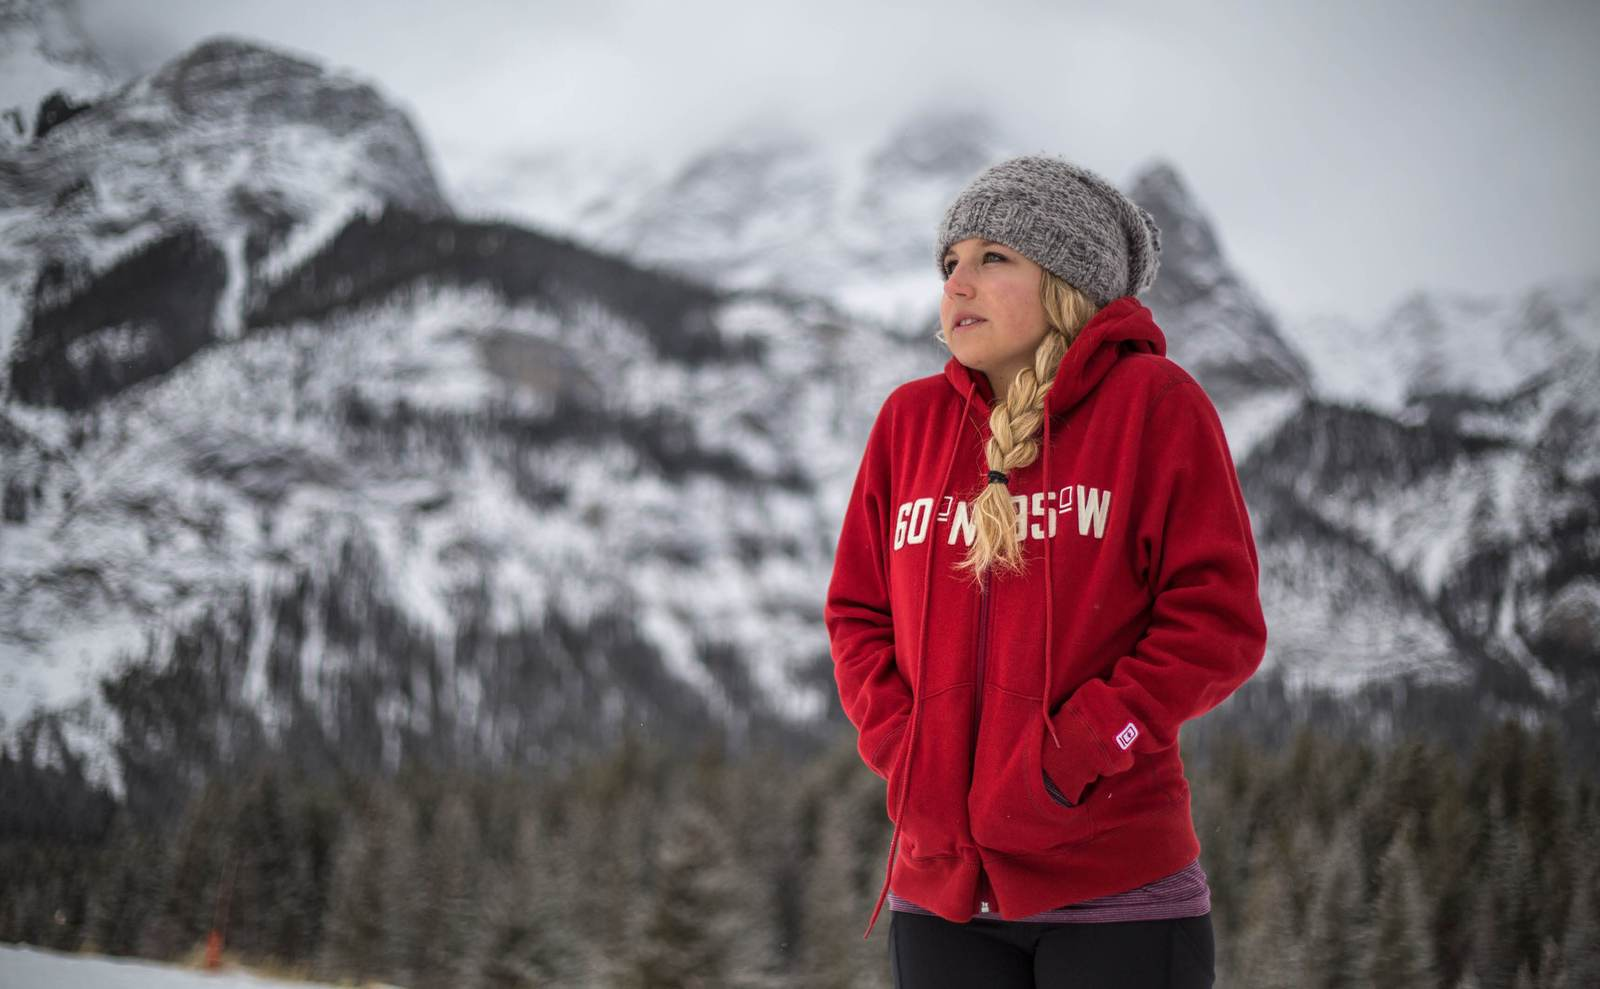 Women's 60°N 95°W logo harvest red full-zip hoody